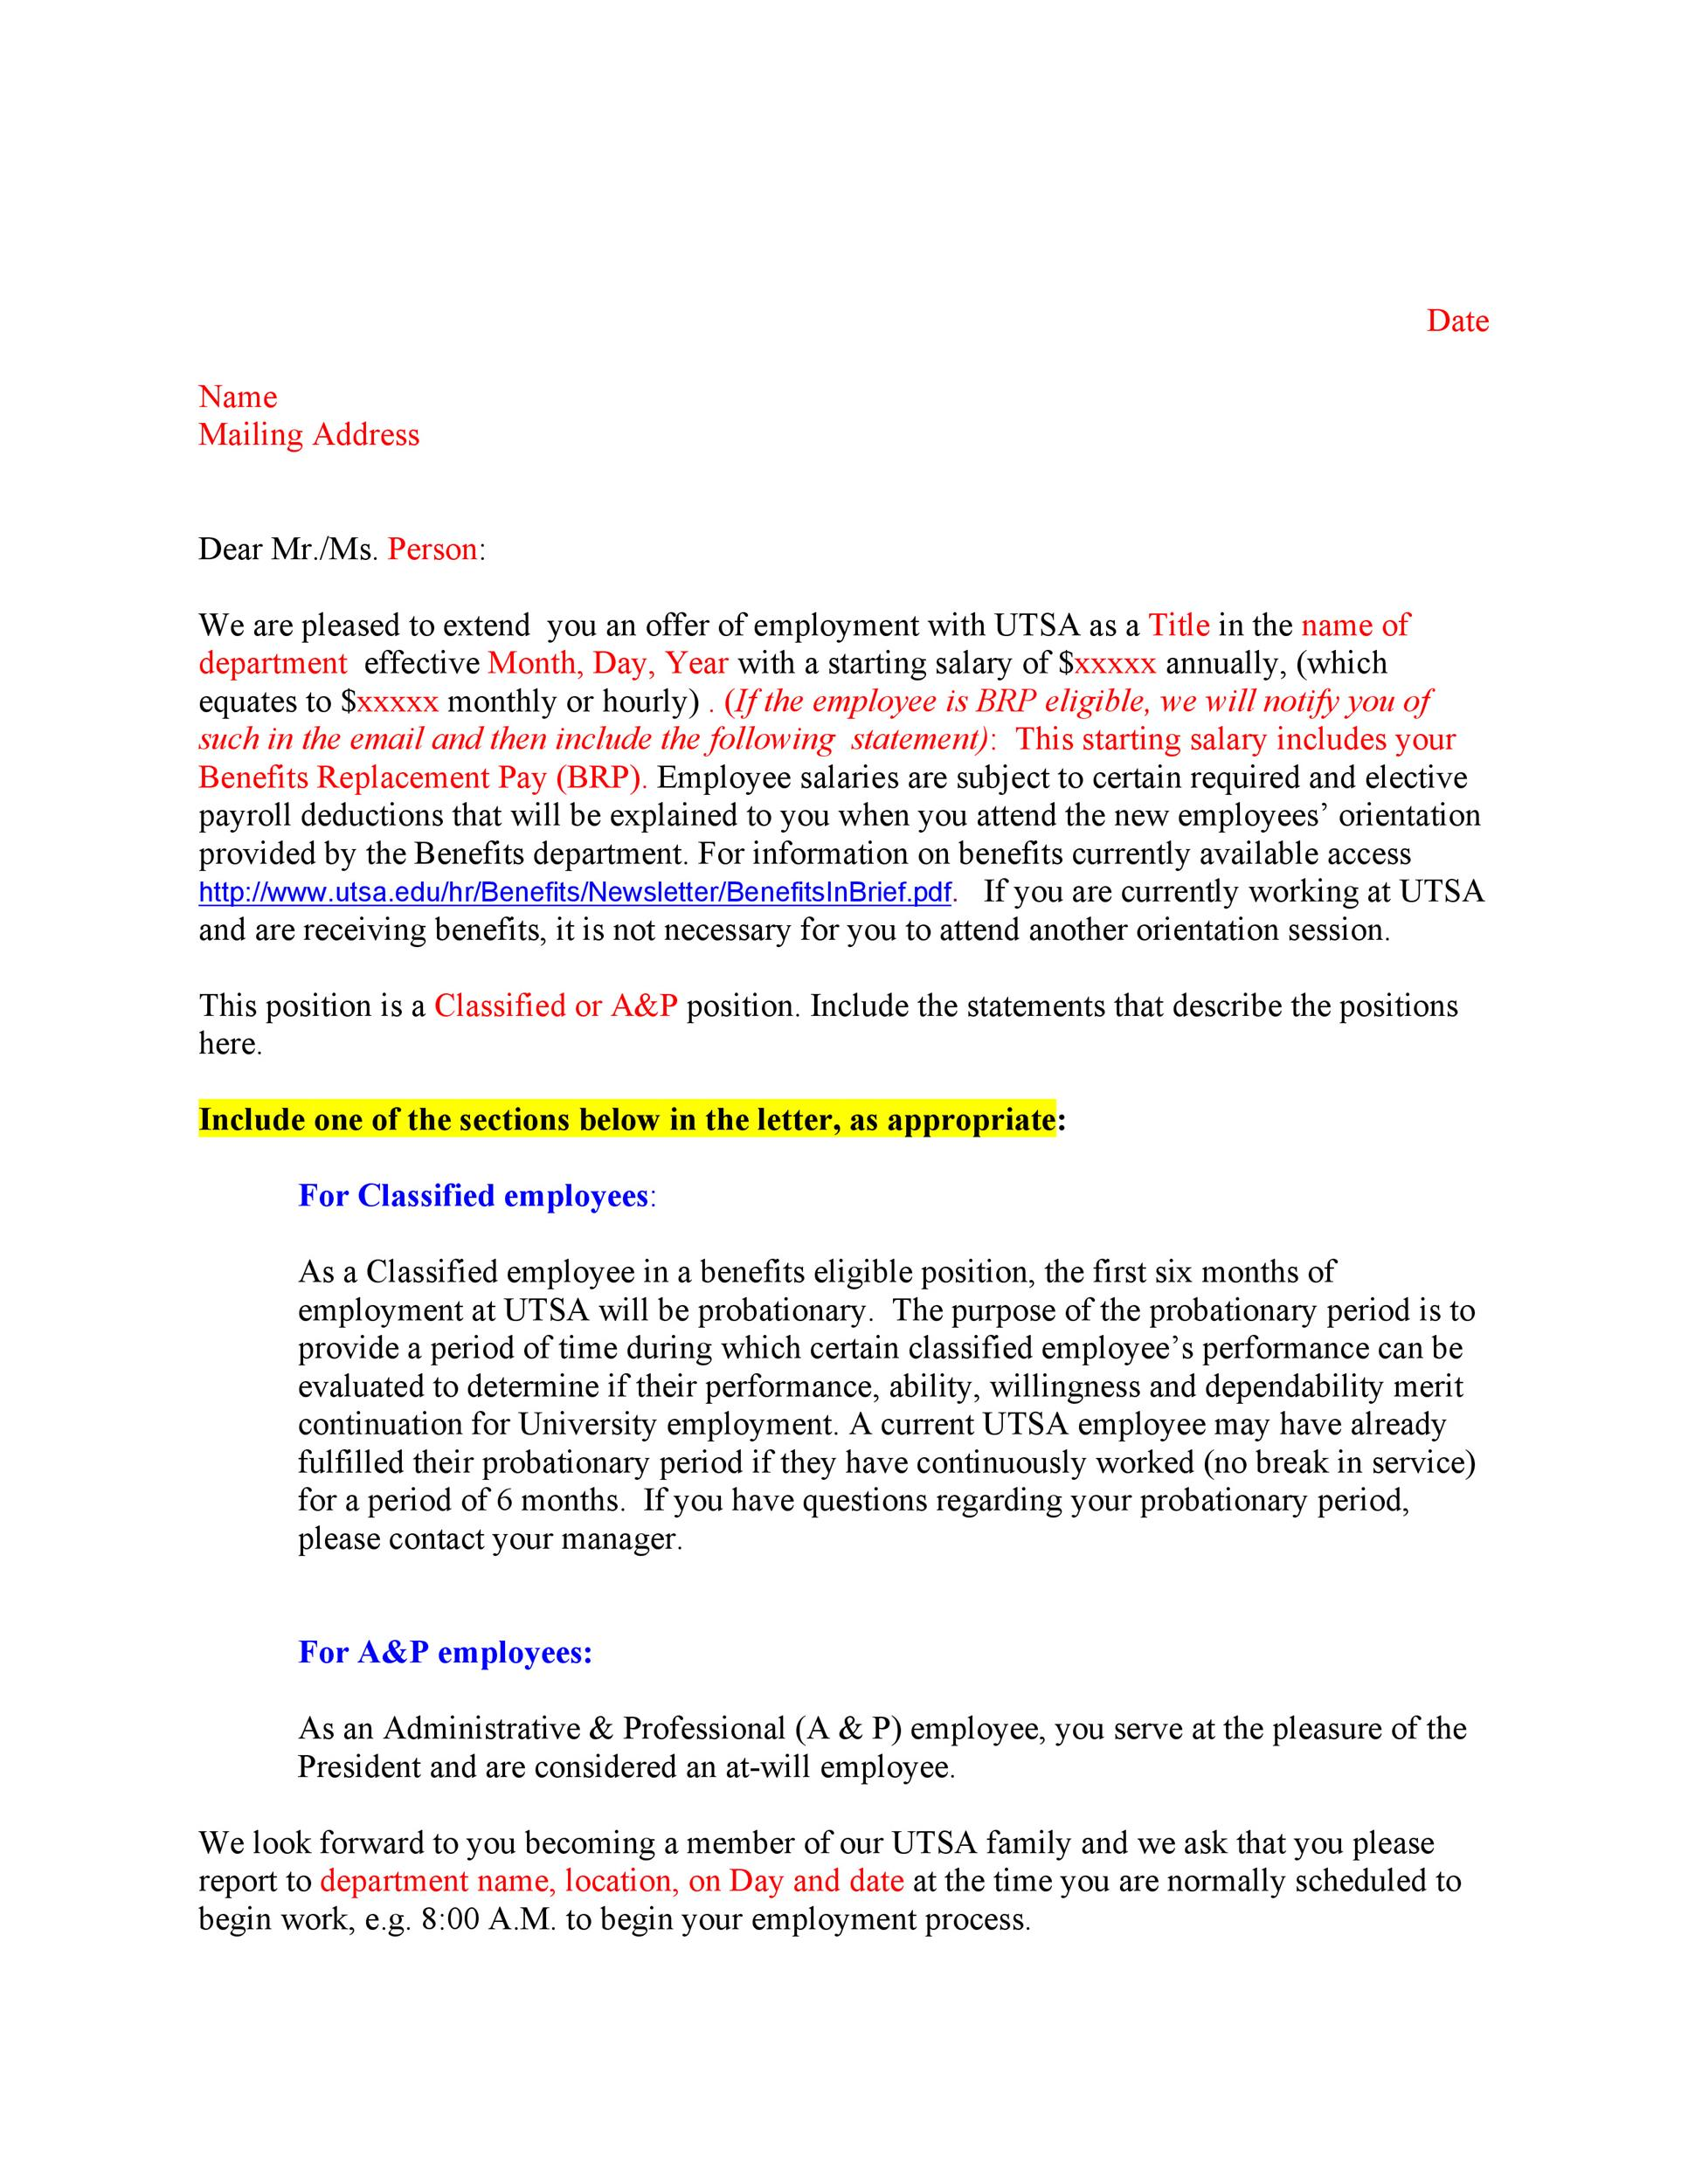 44 Fantastic Offer Letter Templates Employment Counter Offer Job